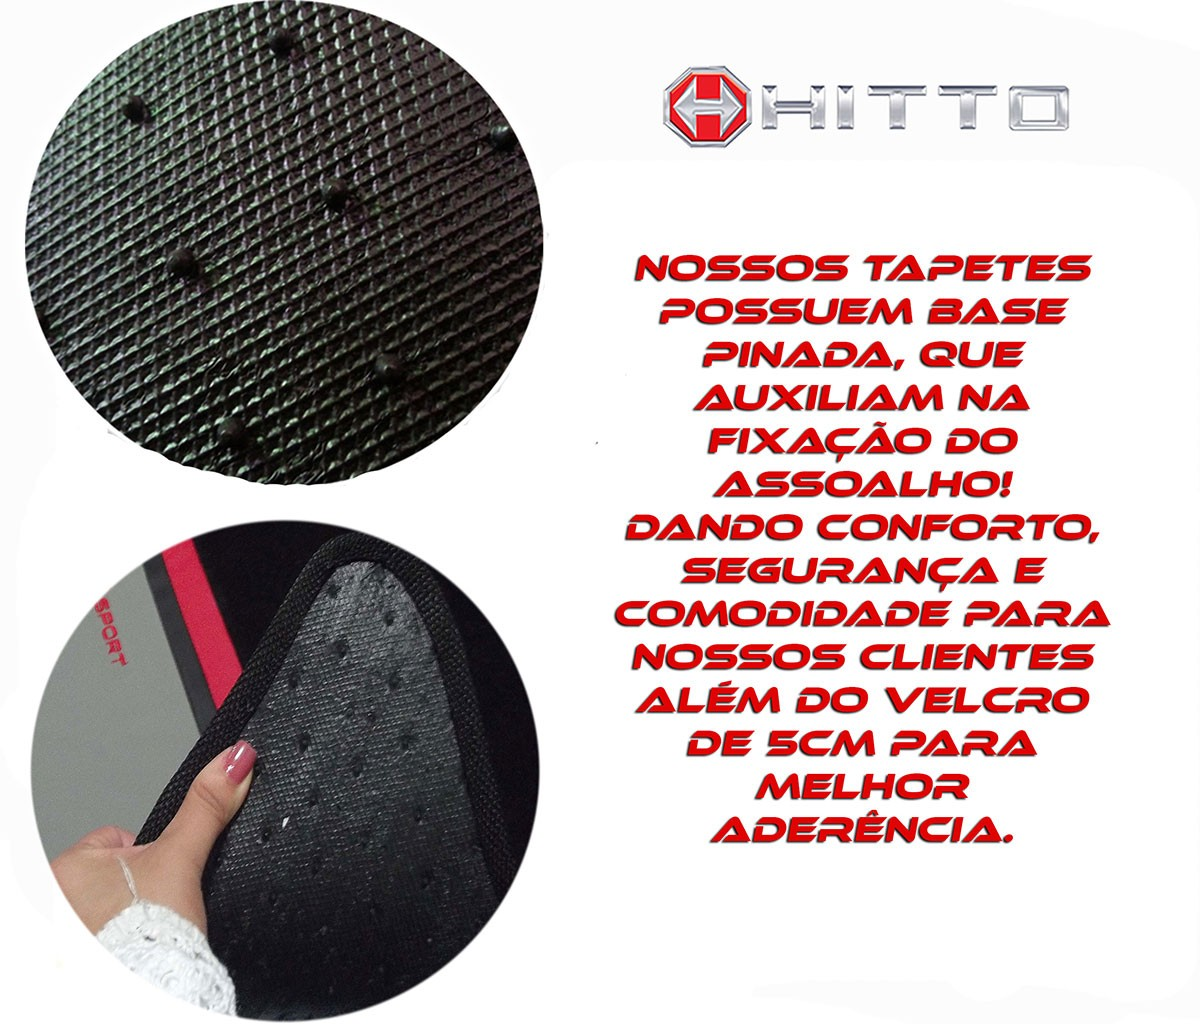 Tapete Vw Crossfox Carpete Luxo Base Borracha Pinada Hitto